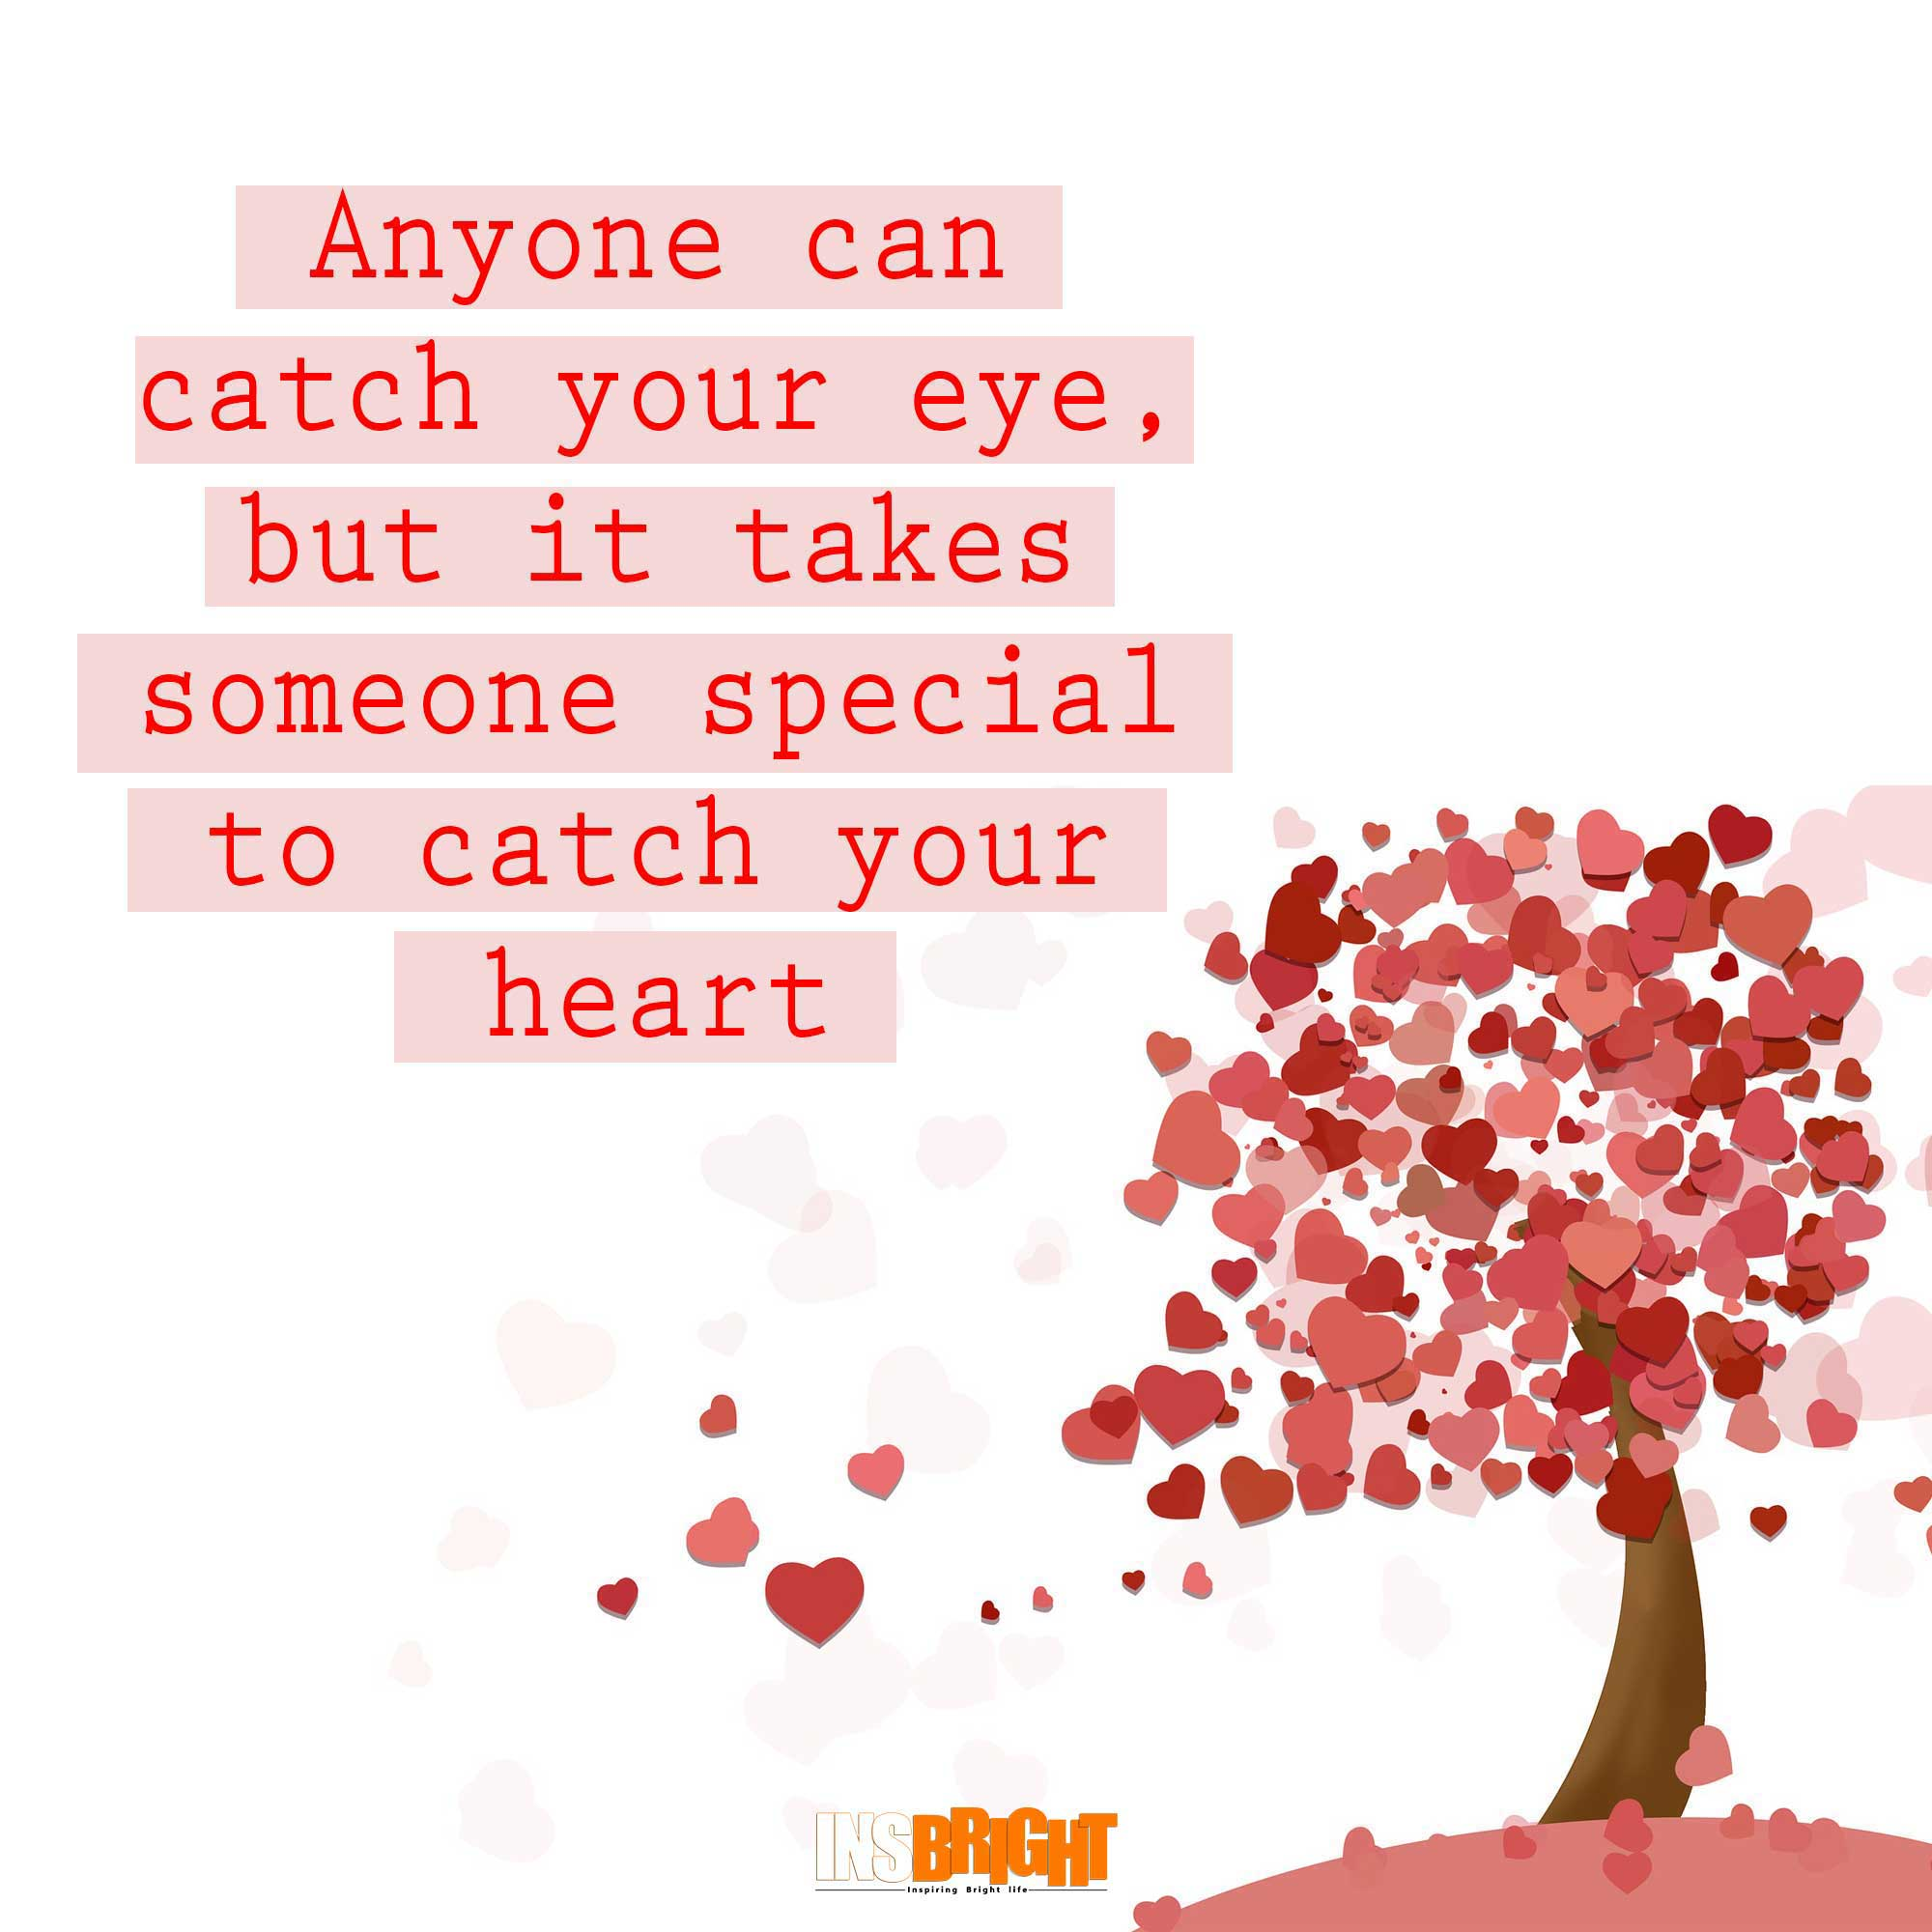 Valentines Day Quotes For Her Cute Happy Valentines Day Quotes With Images  For Him Or Her